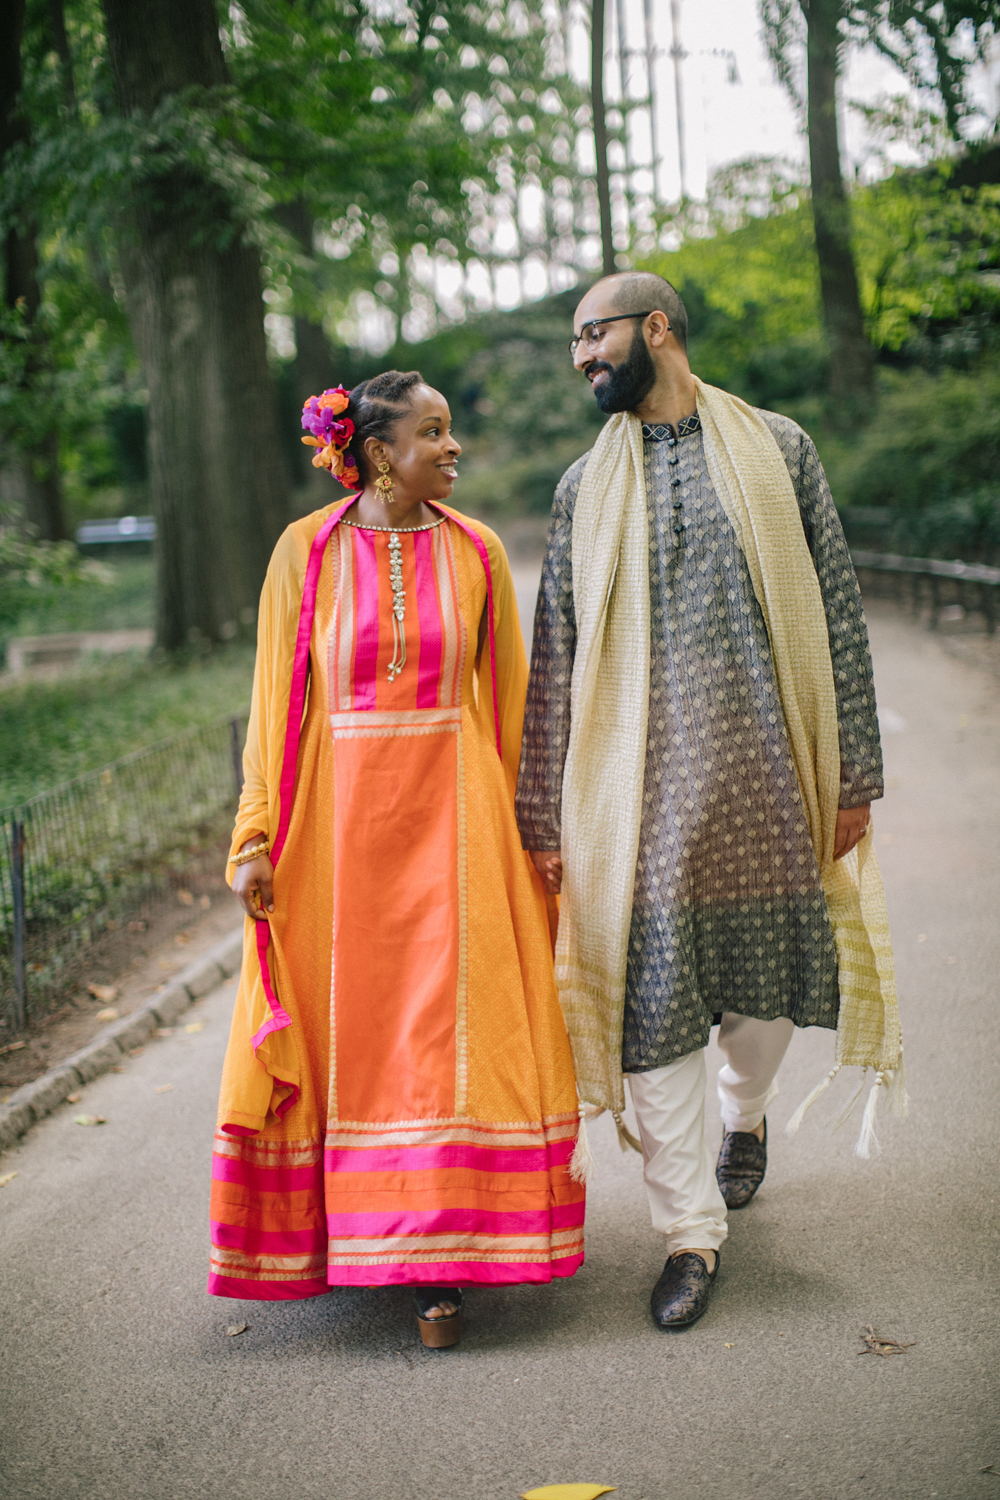 Bride and groom hold hands while walking together through Central Park.